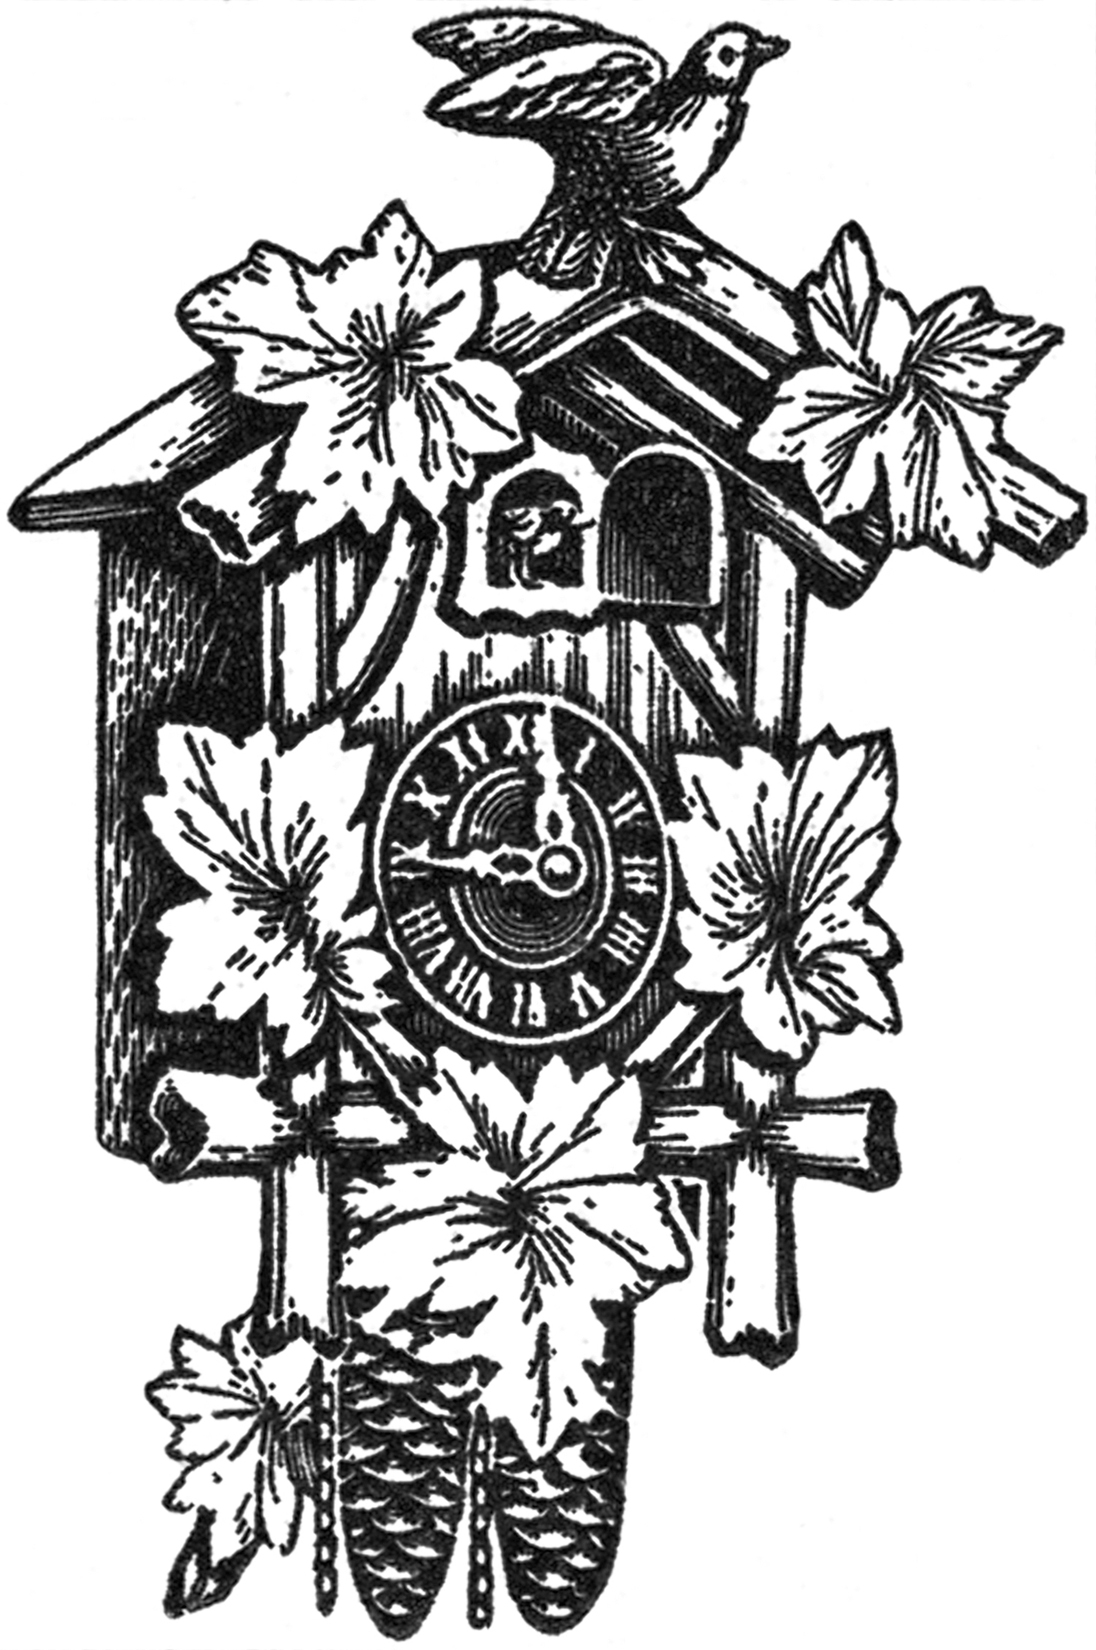 4 Vintage Cuckoo Clock Images - The Graphics Fairy